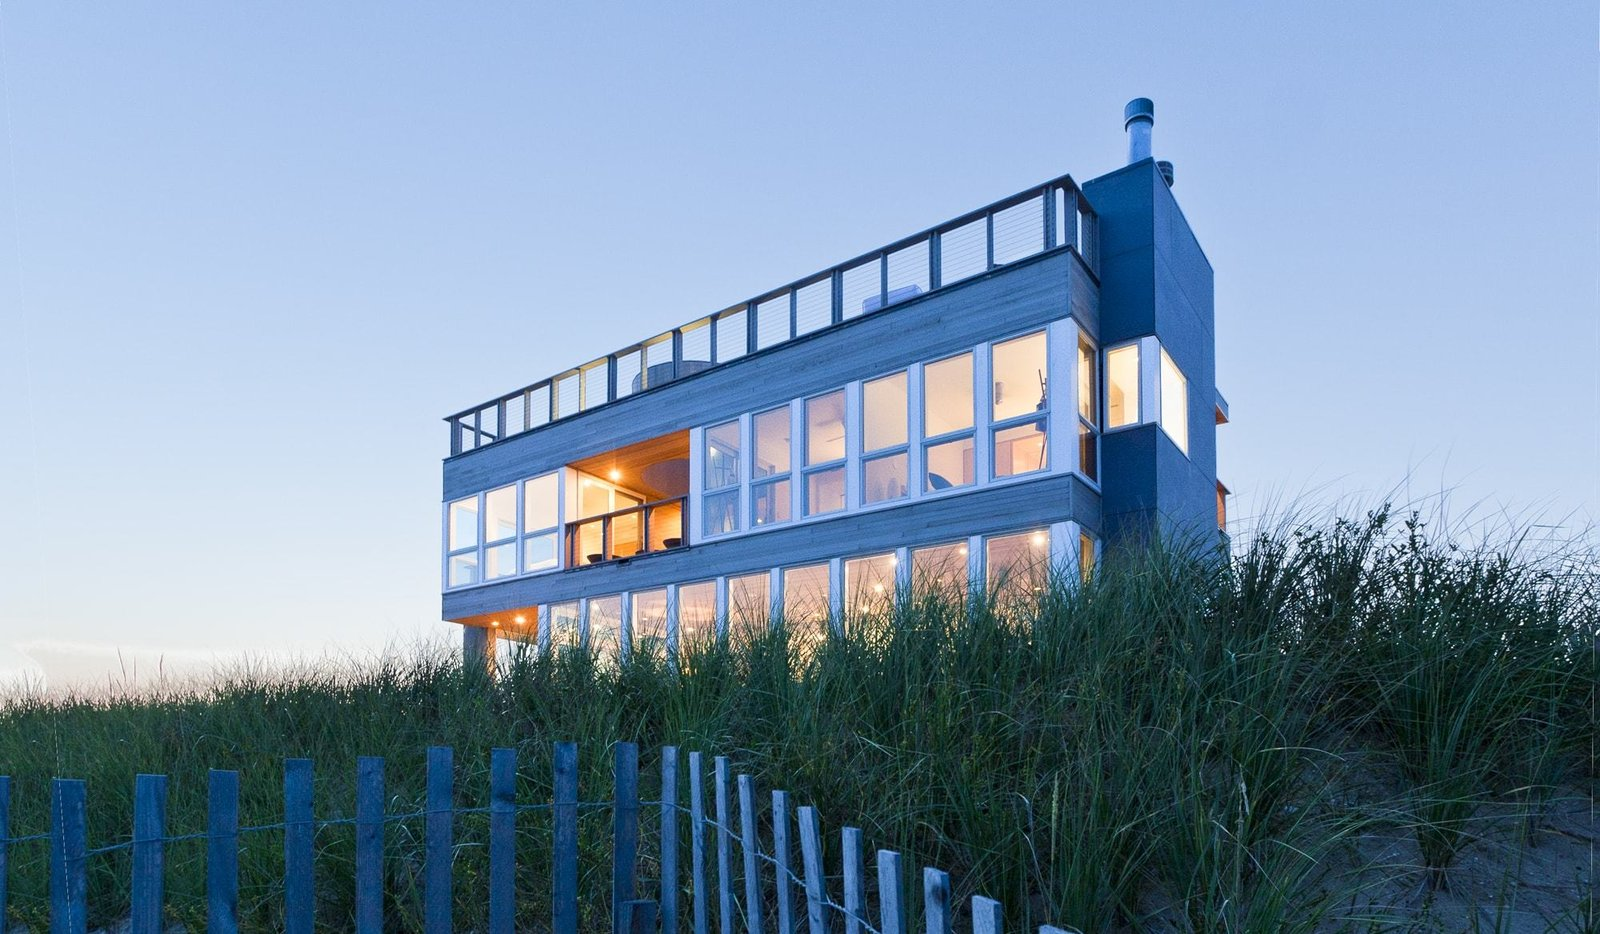 House Building Type, Wood Siding Material, Metal Siding Material, Outdoor, and Grass Southeast corner from beach  Dune Road Beach House by Resolution: 4 Architecture